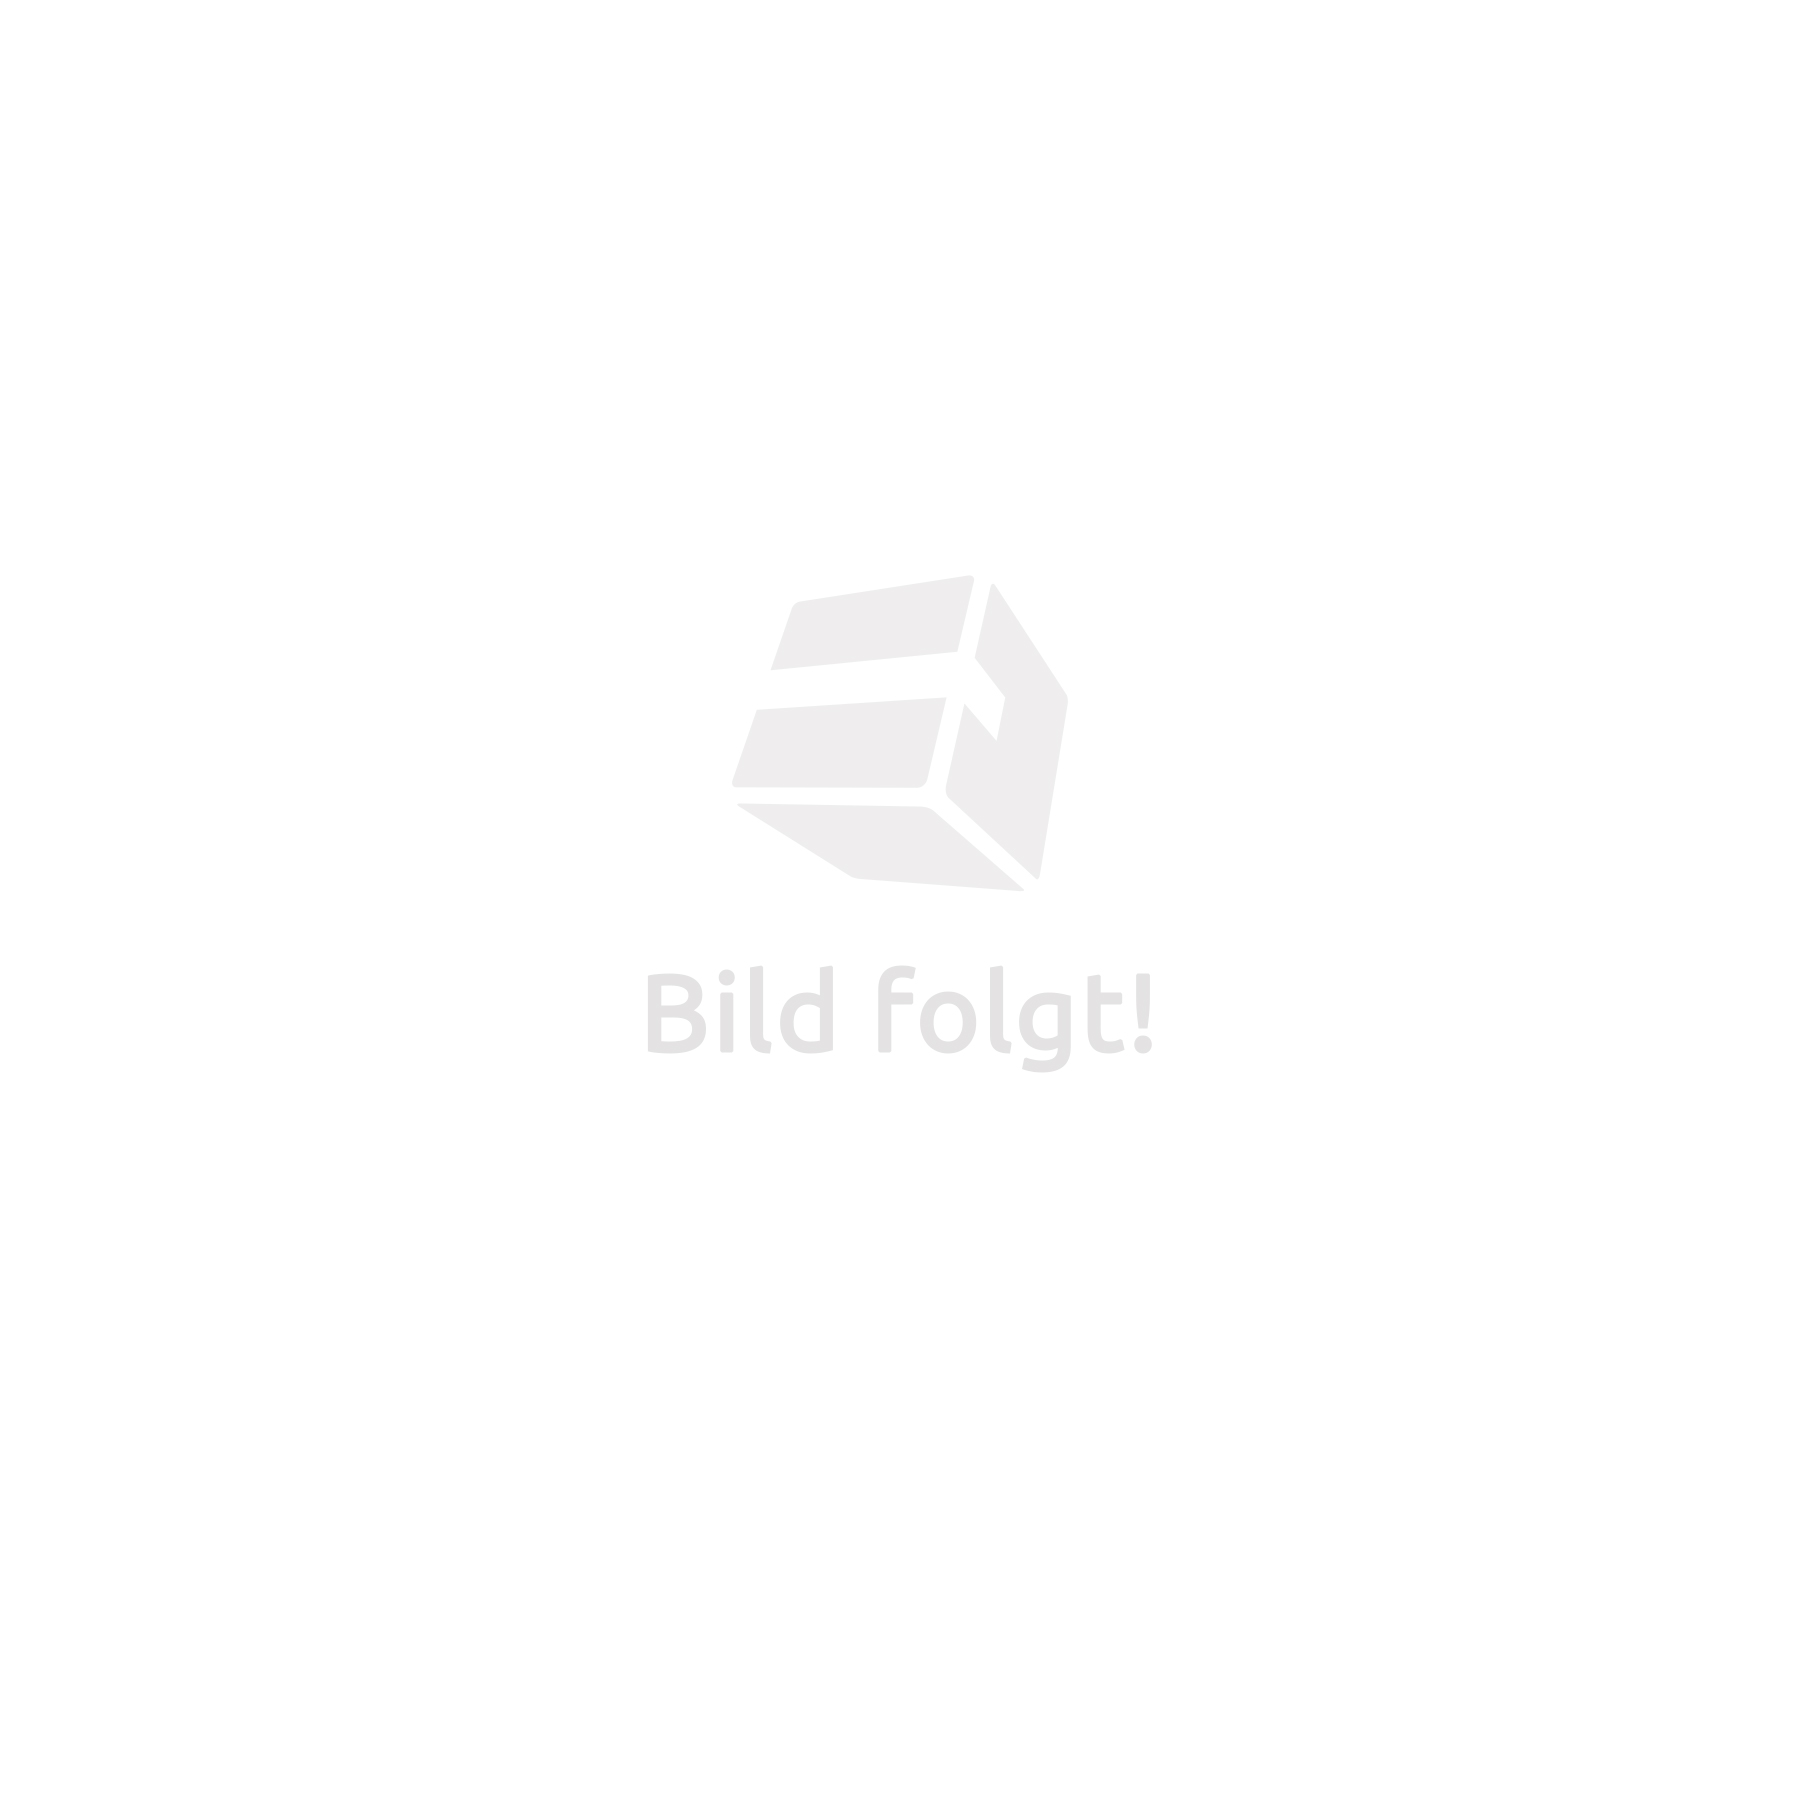 rattan garden furniture set chairs sofa table outdoor. Black Bedroom Furniture Sets. Home Design Ideas